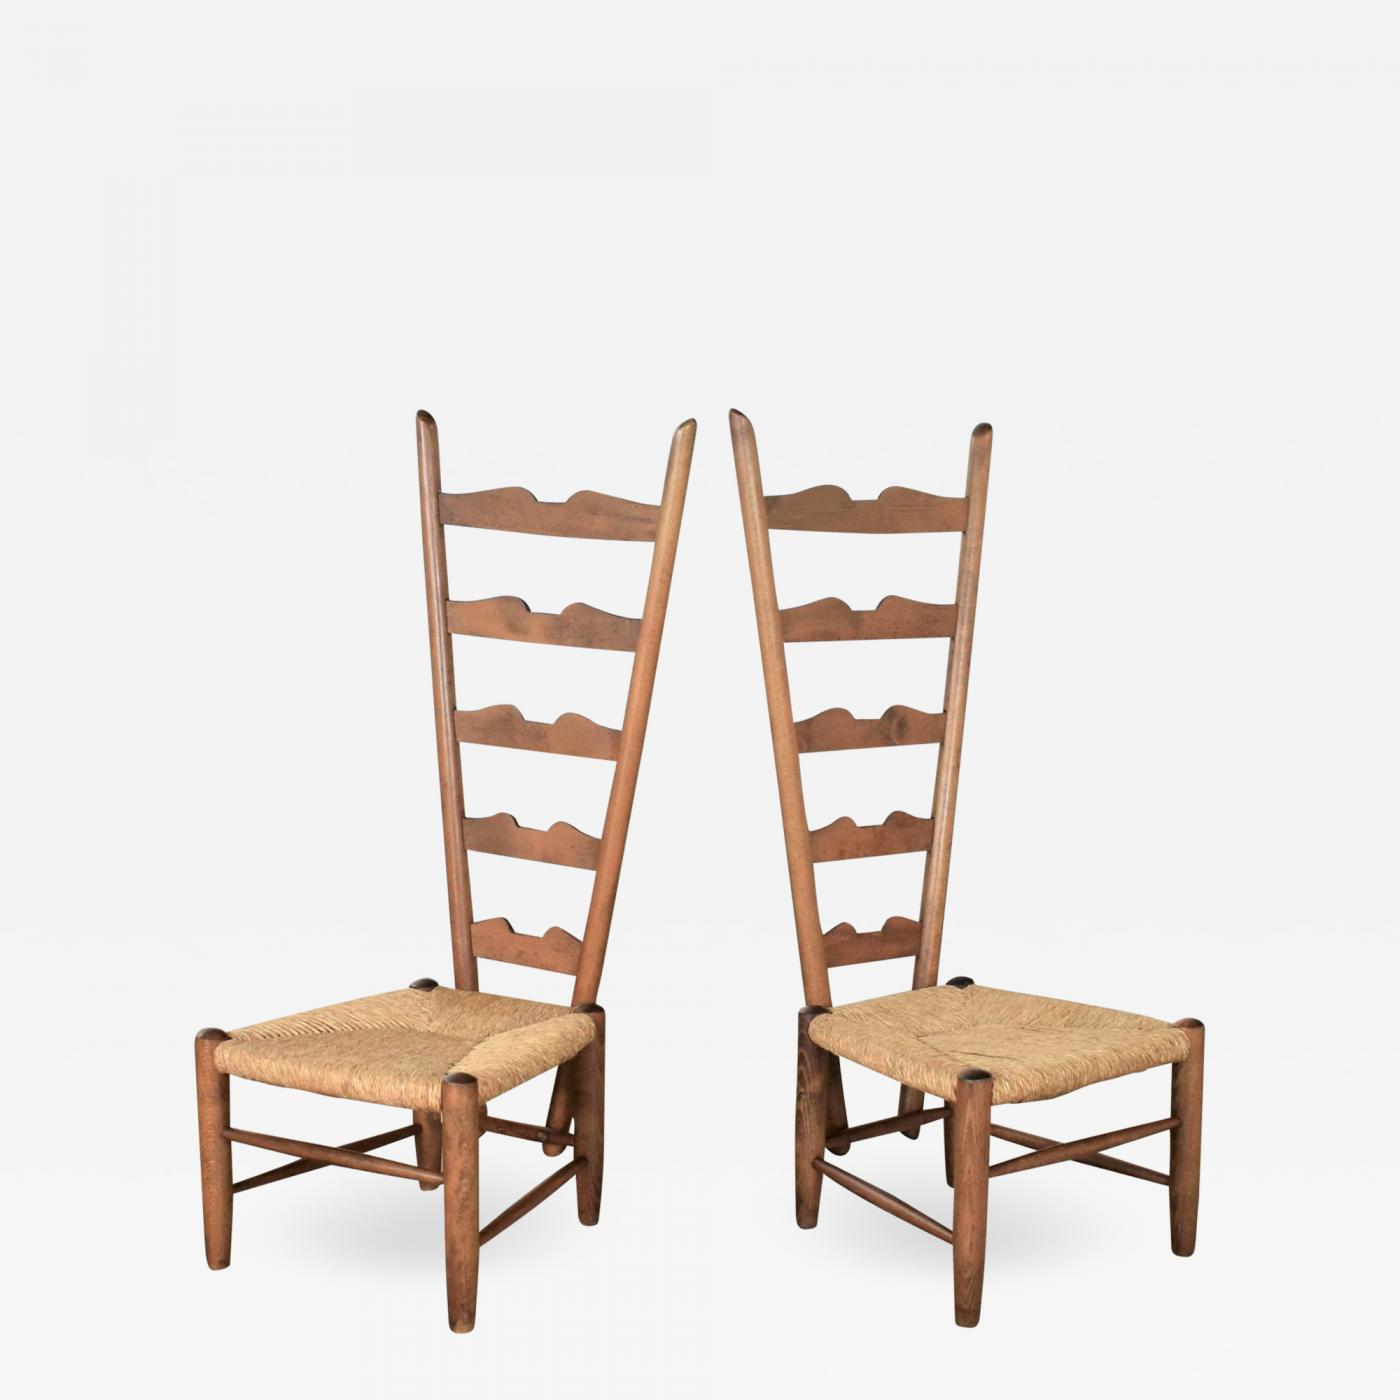 Gio Ponti Vintage Italian Fireside Ladderback Chairs By Gio Ponti For Casa E Giardino